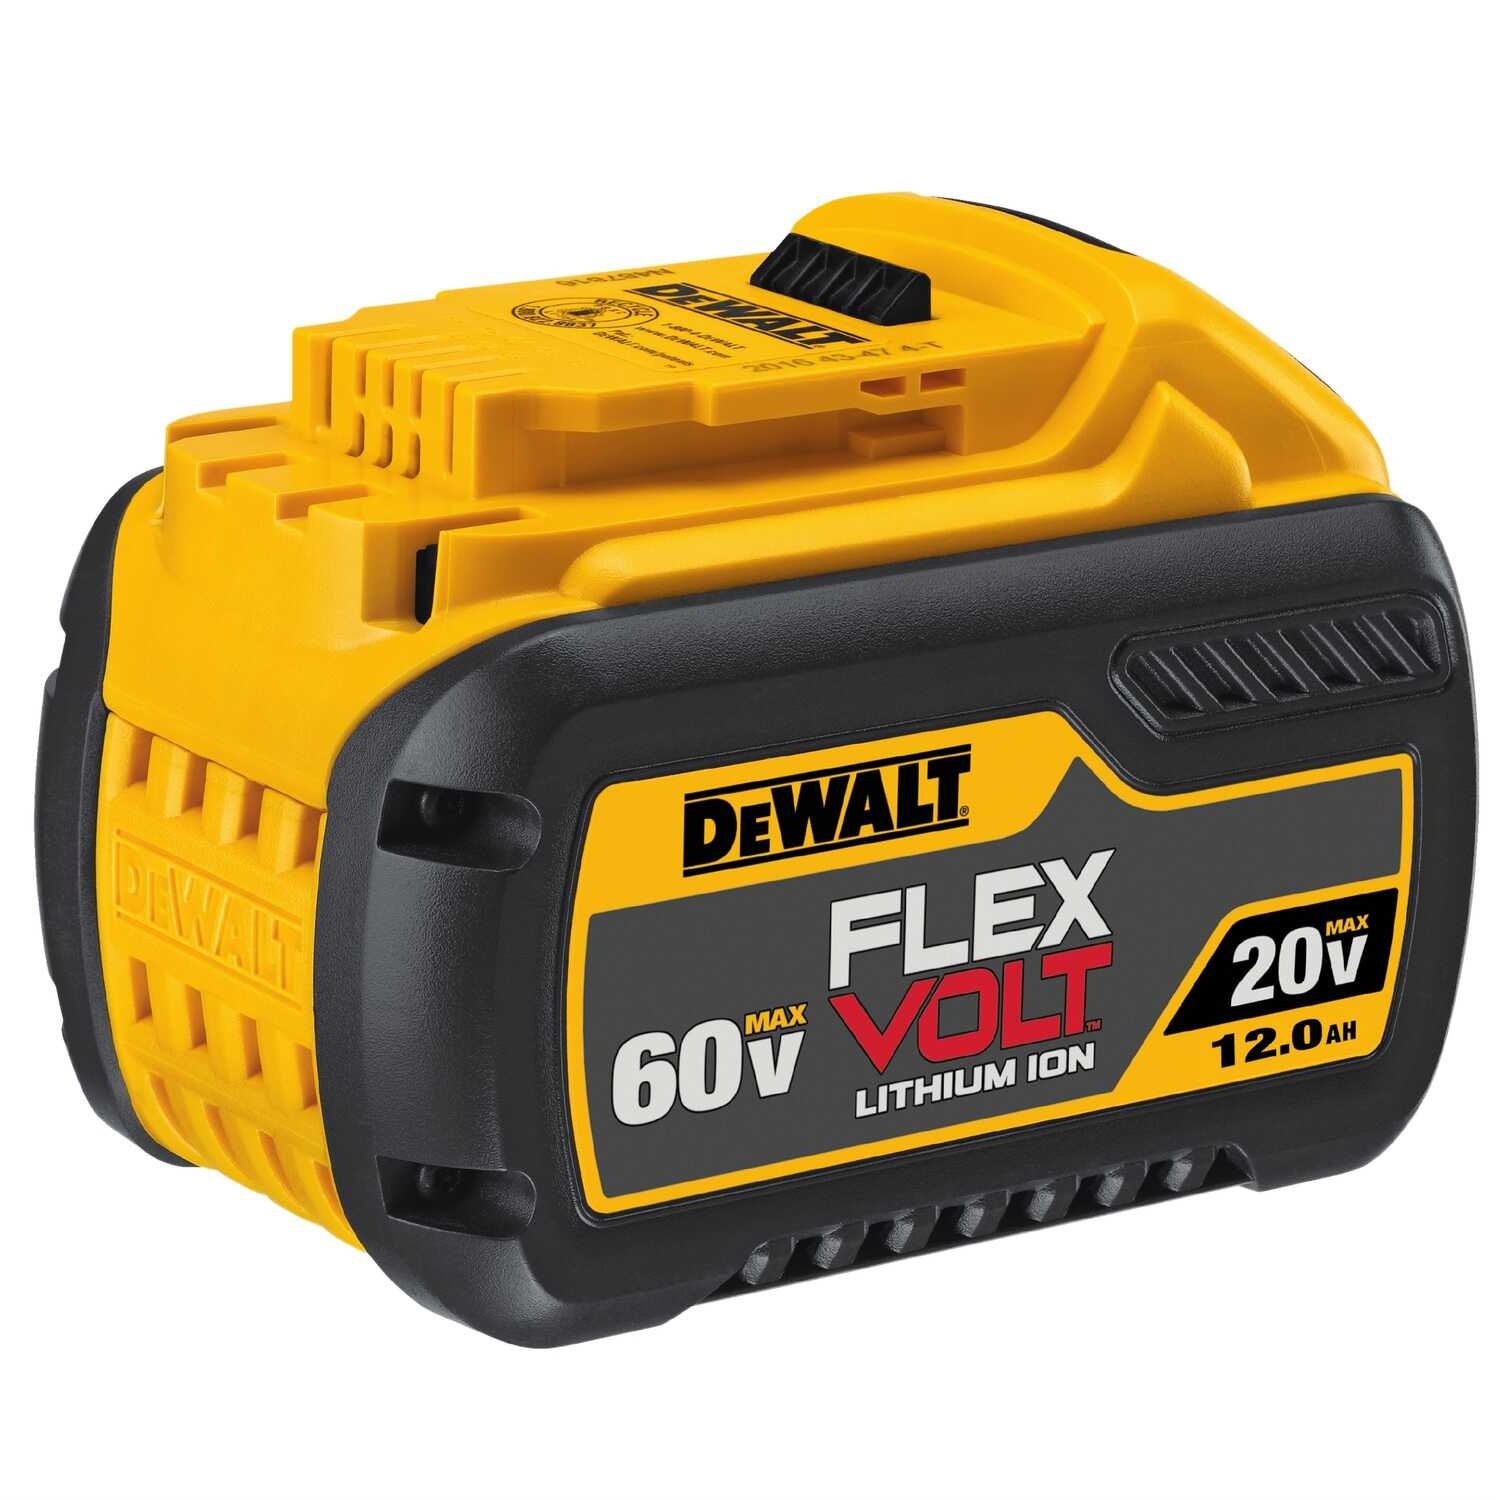 DeWalt  Flexvolt  DCB612  20/60 volt 12 Ah Lithium-Ion  High Capacity Battery Pack  1 pc.